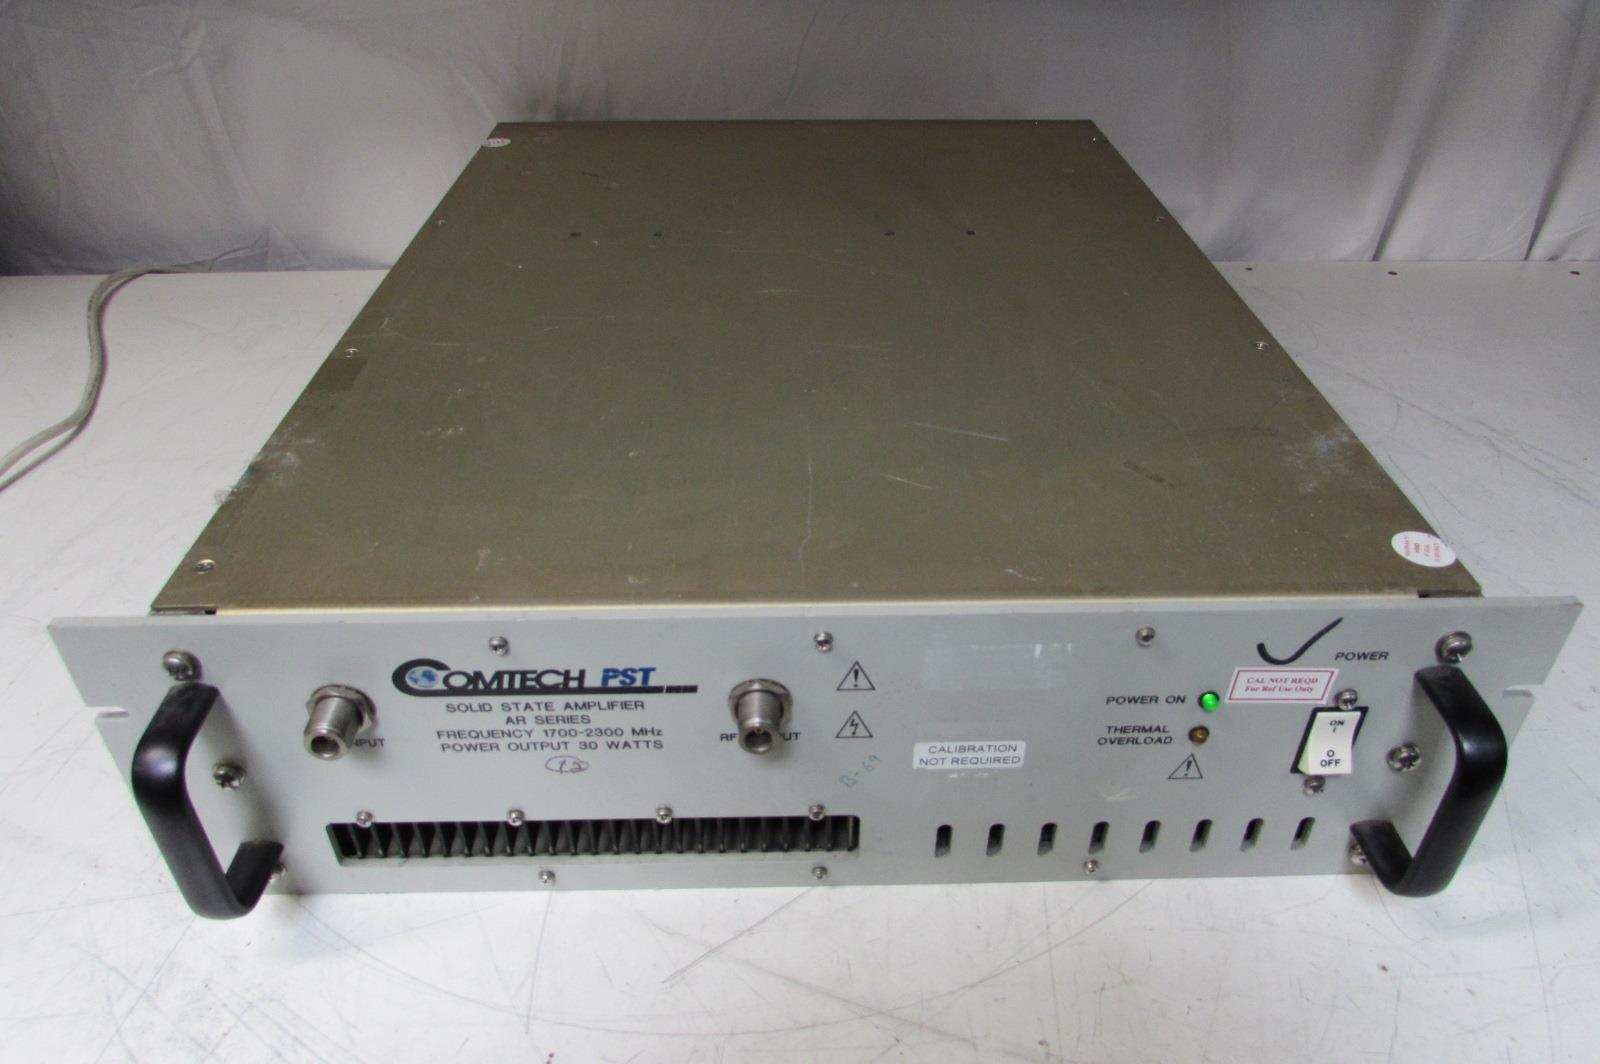 comtech-pst-ar178238-30-rf-power-amplifier-30-watts-1700-2300-mhz-used-0.jpg